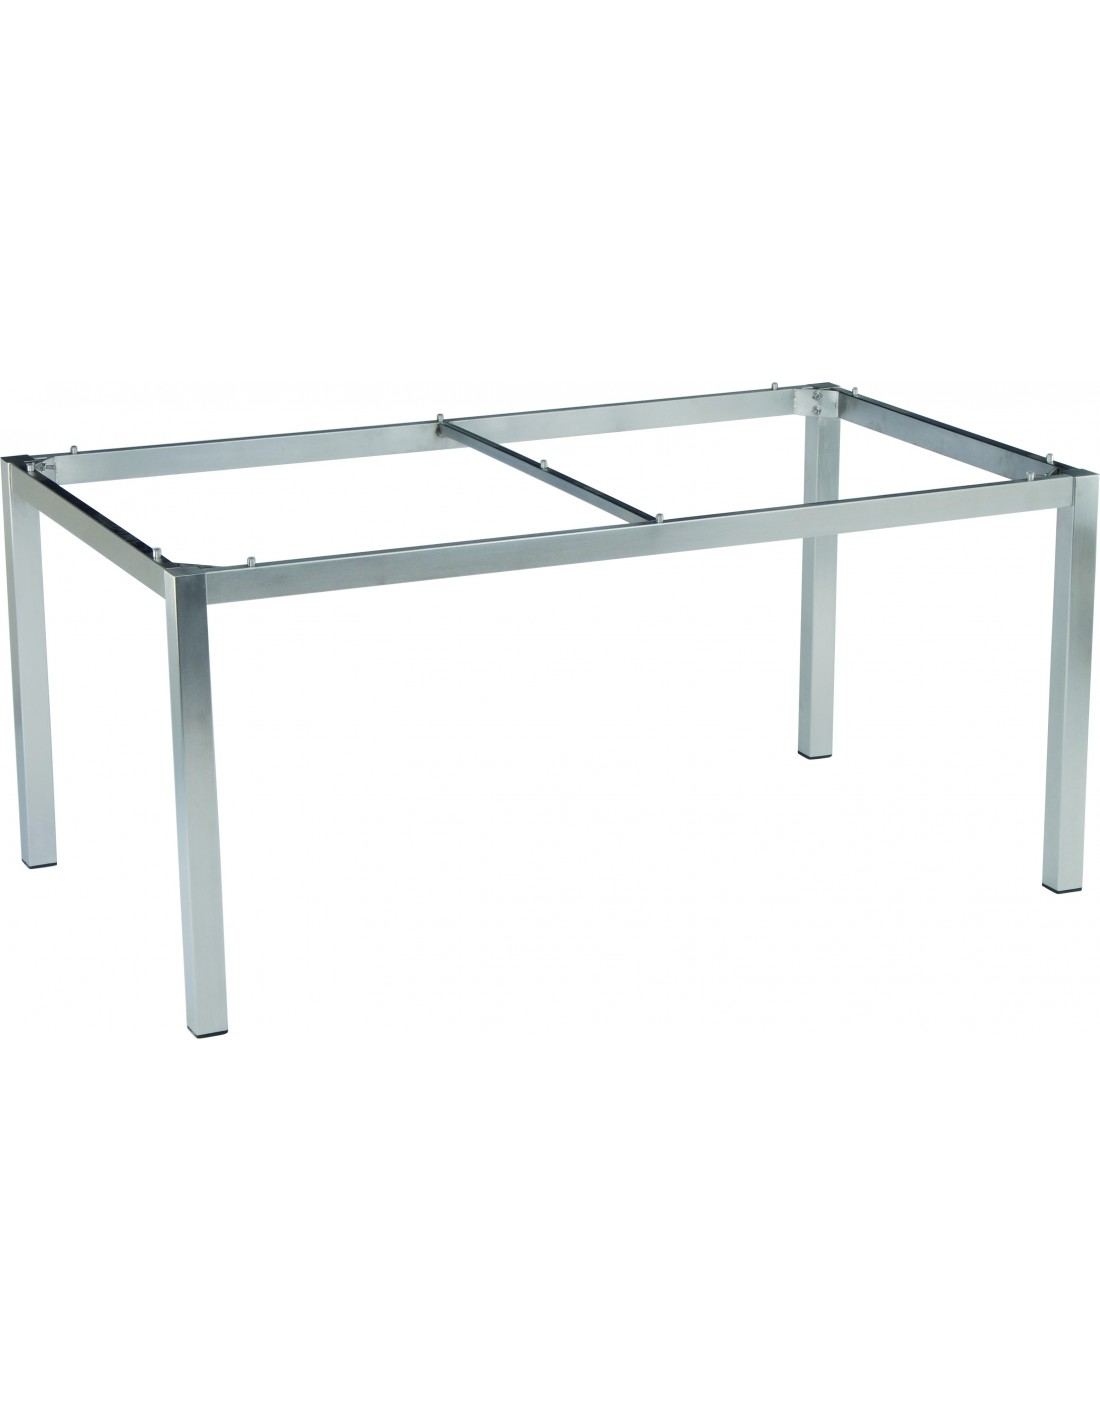 table de jardin inox stern 160 x 90 cm plateau hpl au choix. Black Bedroom Furniture Sets. Home Design Ideas